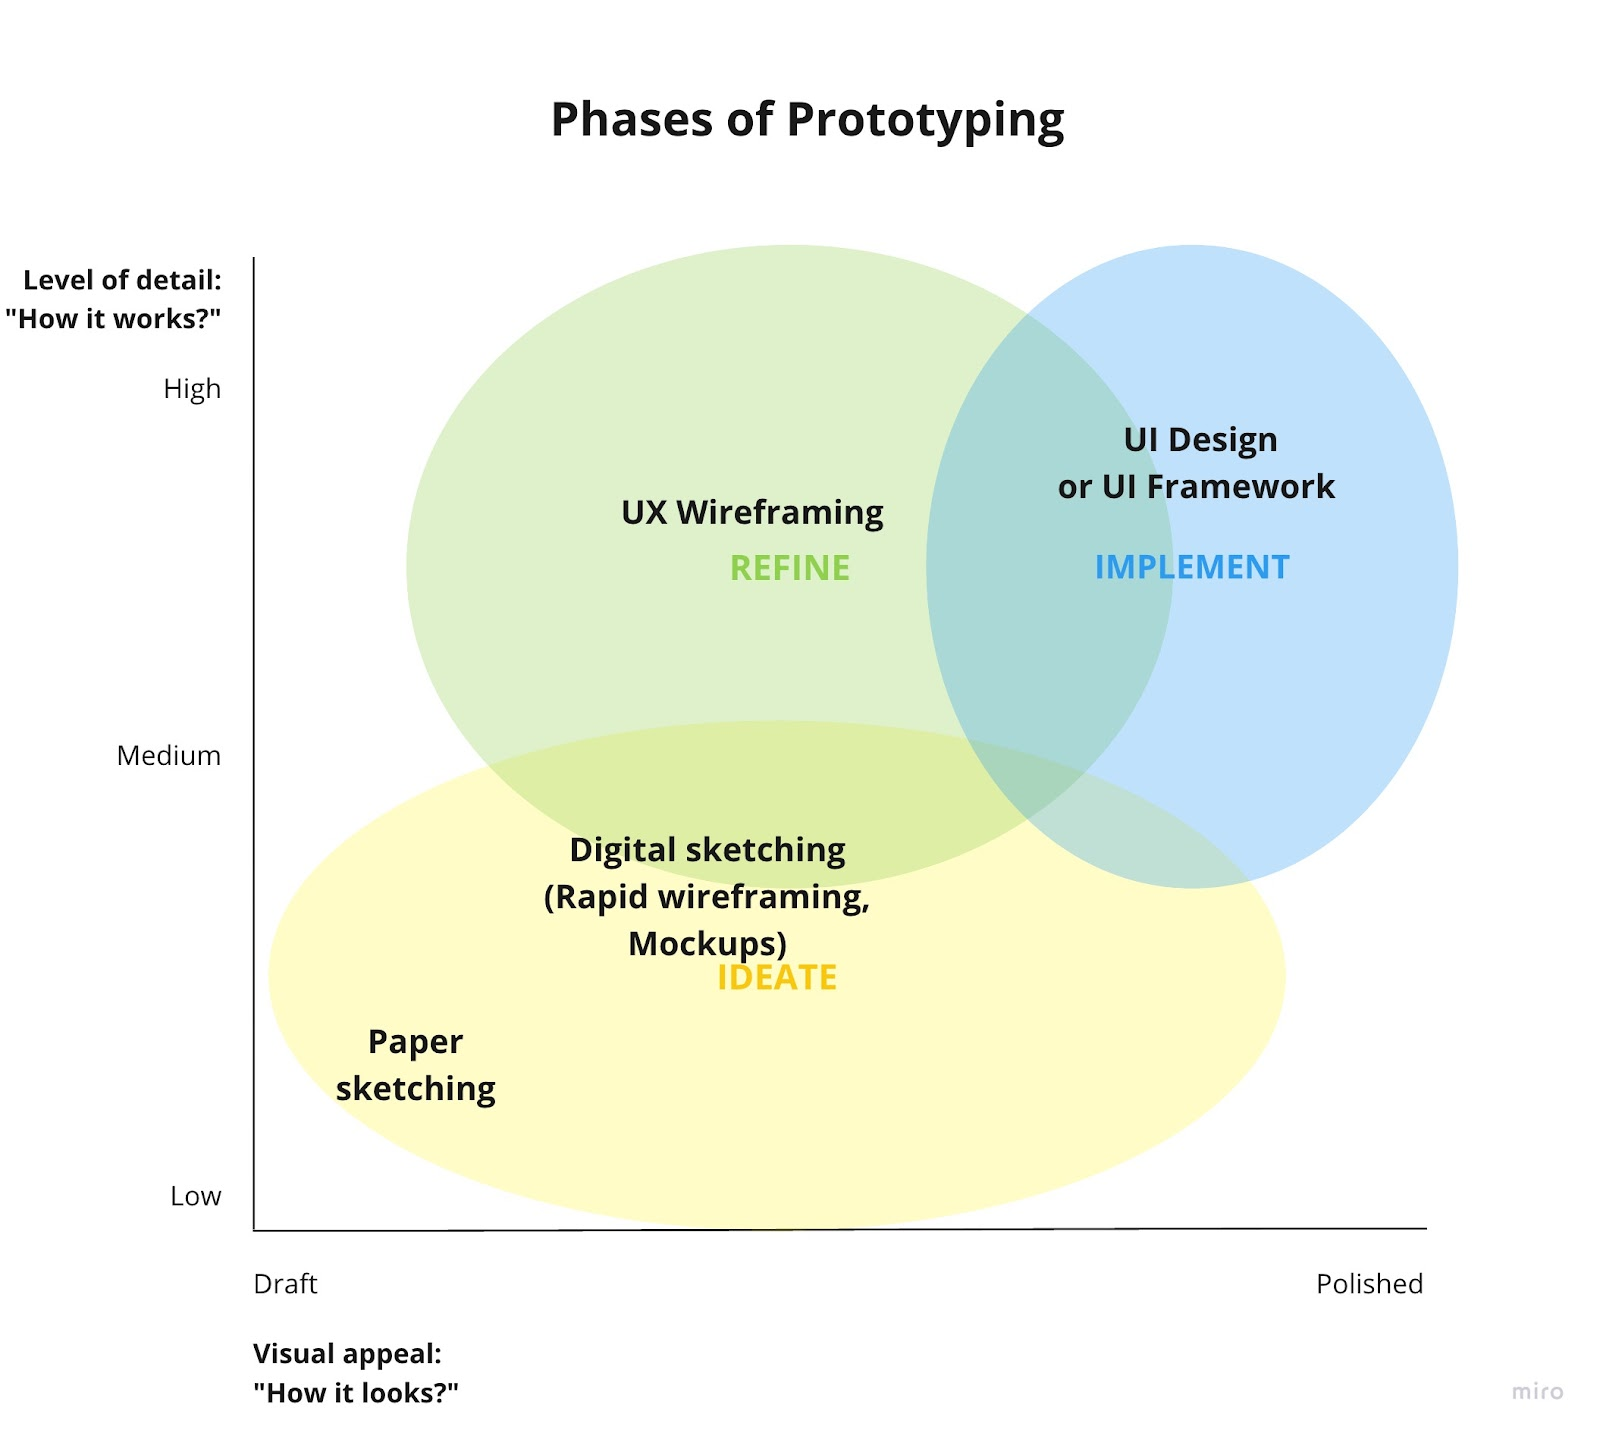 The Three Phases of Prototyping: Ideate, Refind & Implement